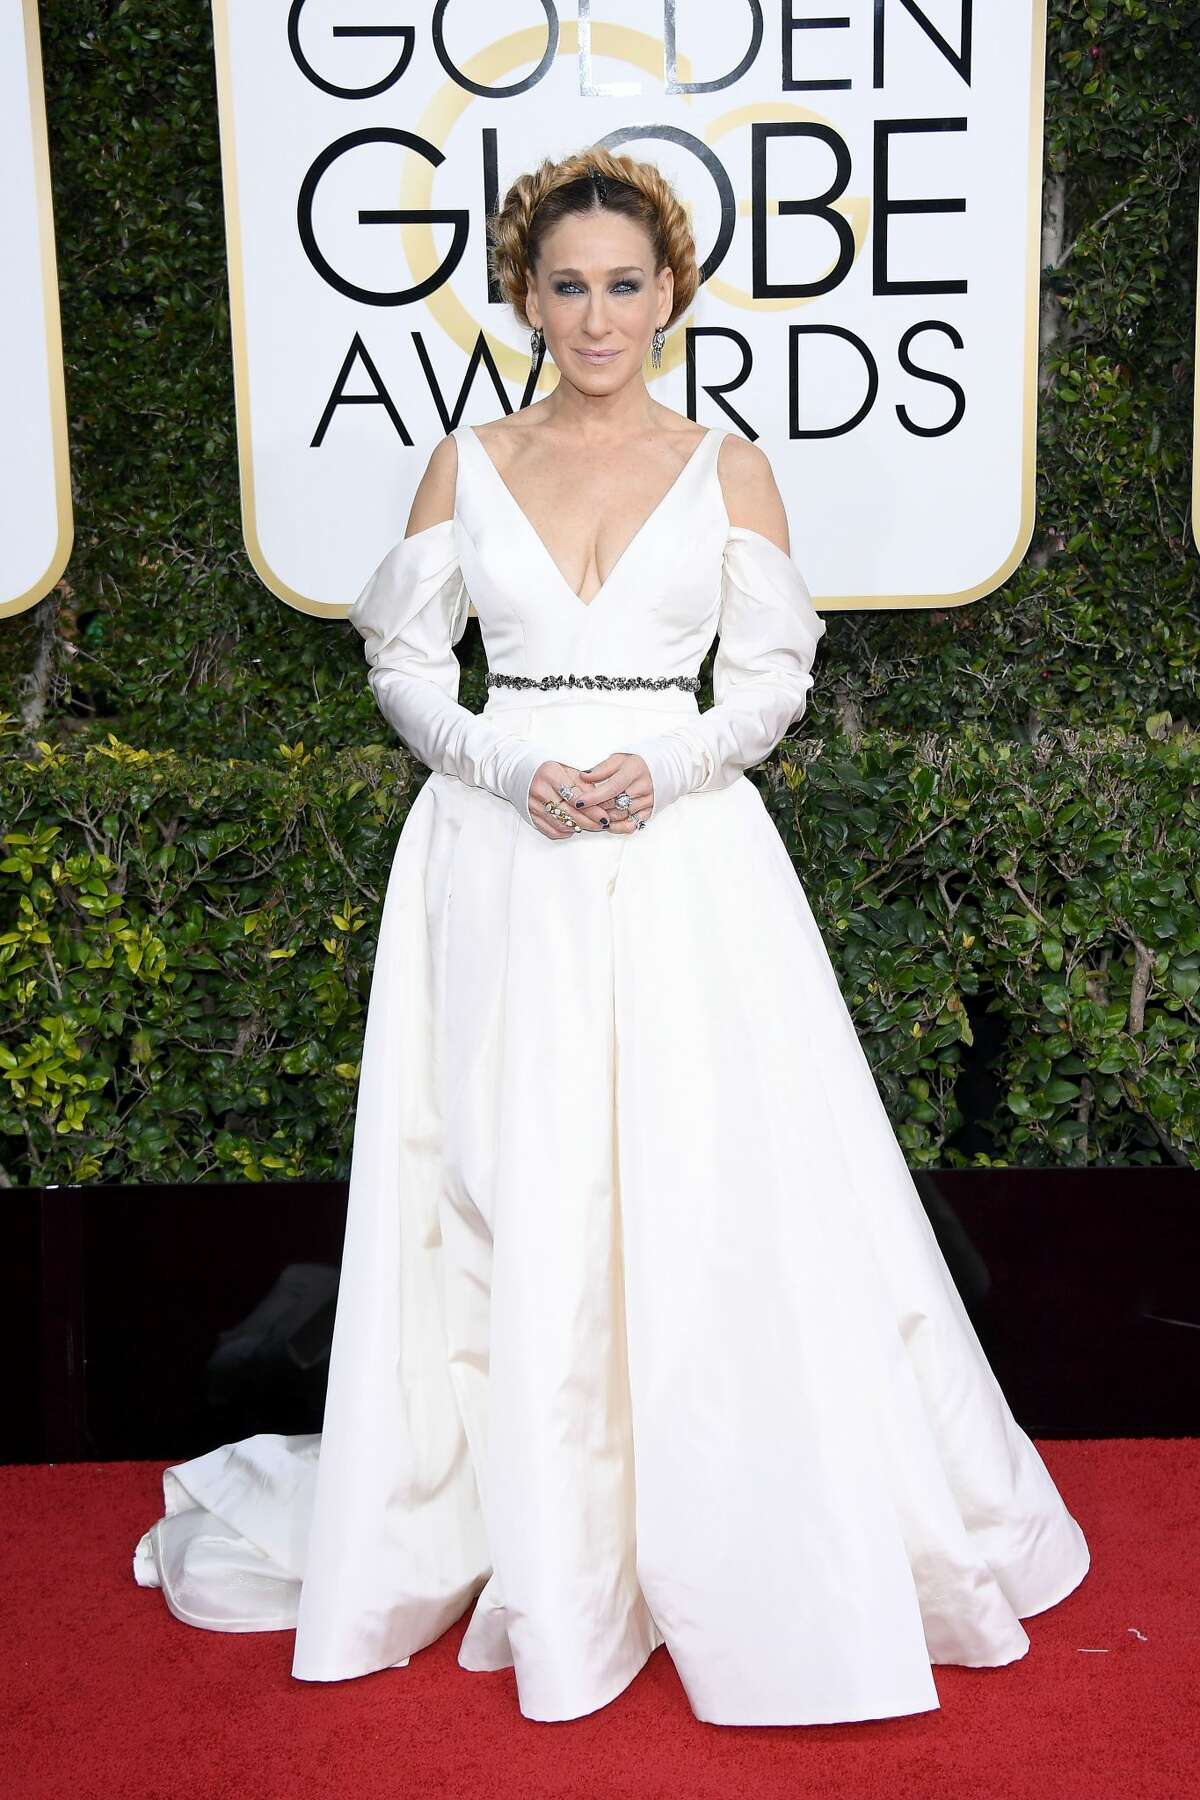 Sarah Jessica Parker attends the 74th Annual Golden Globe Awards at The Beverly Hilton Hotel on January 8, 2017 in Beverly Hills, California.